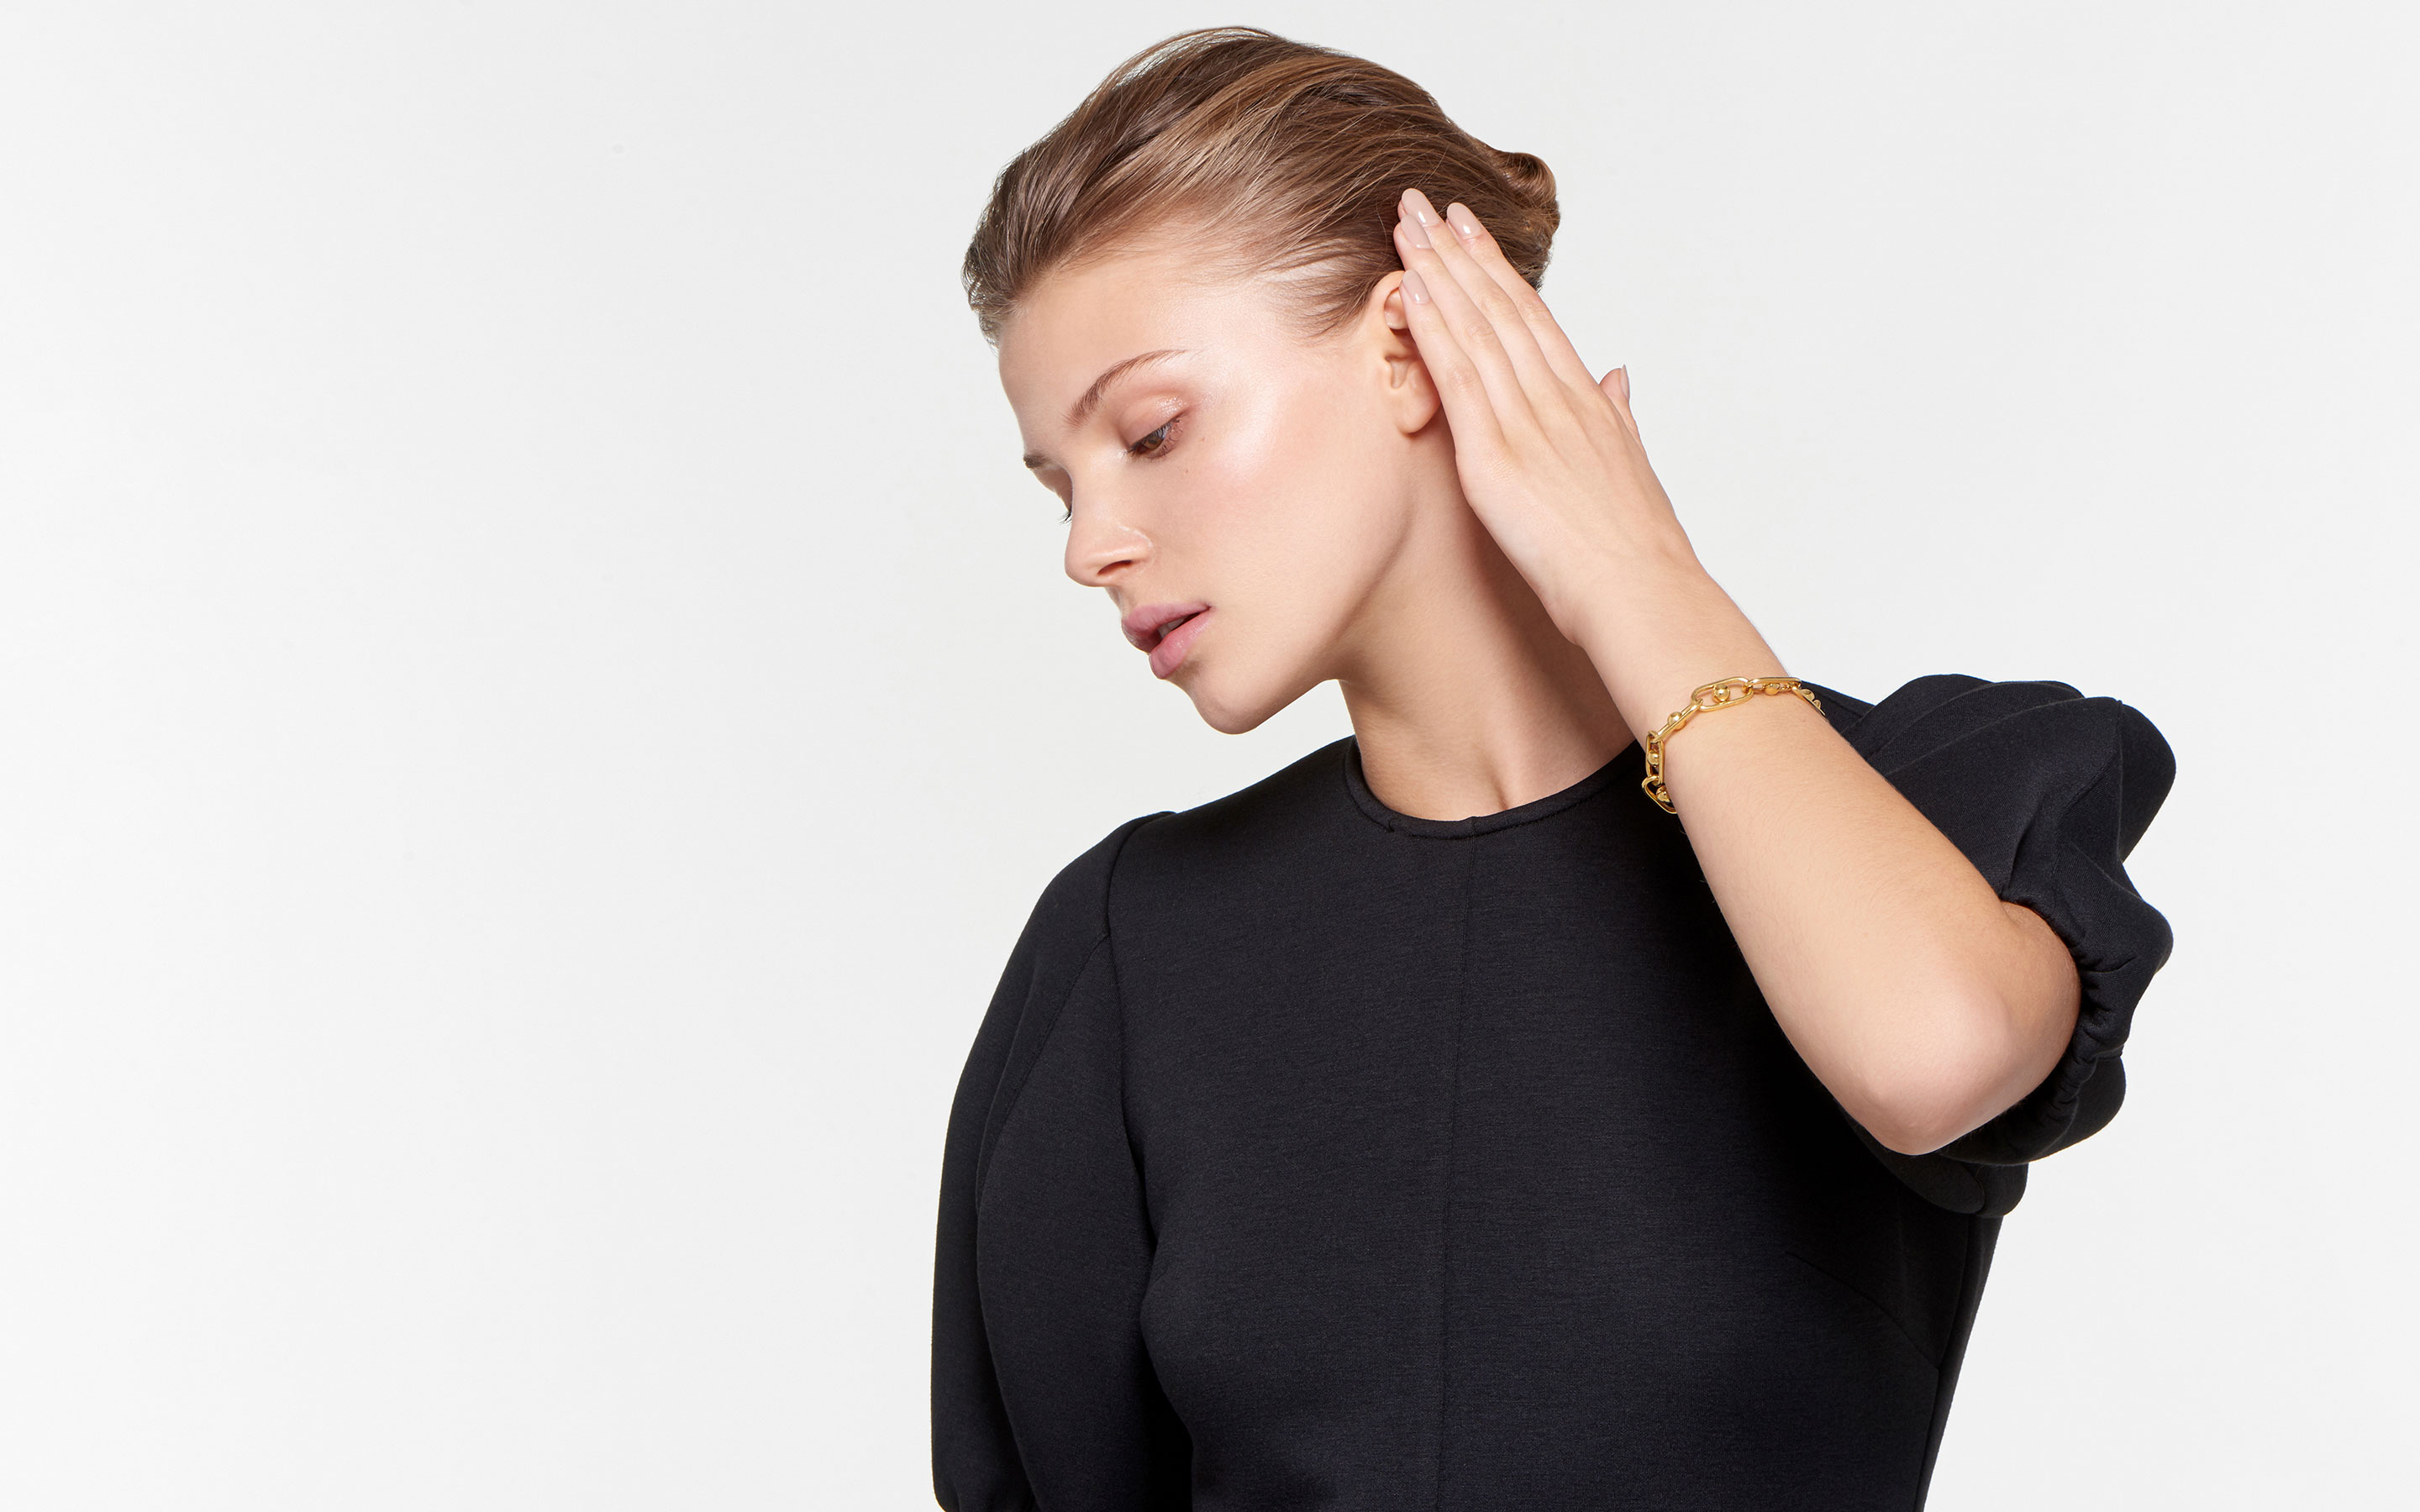 stunning model in profile sporting 22 karat gold bracelet with lunar-style globes suspended in ovular links